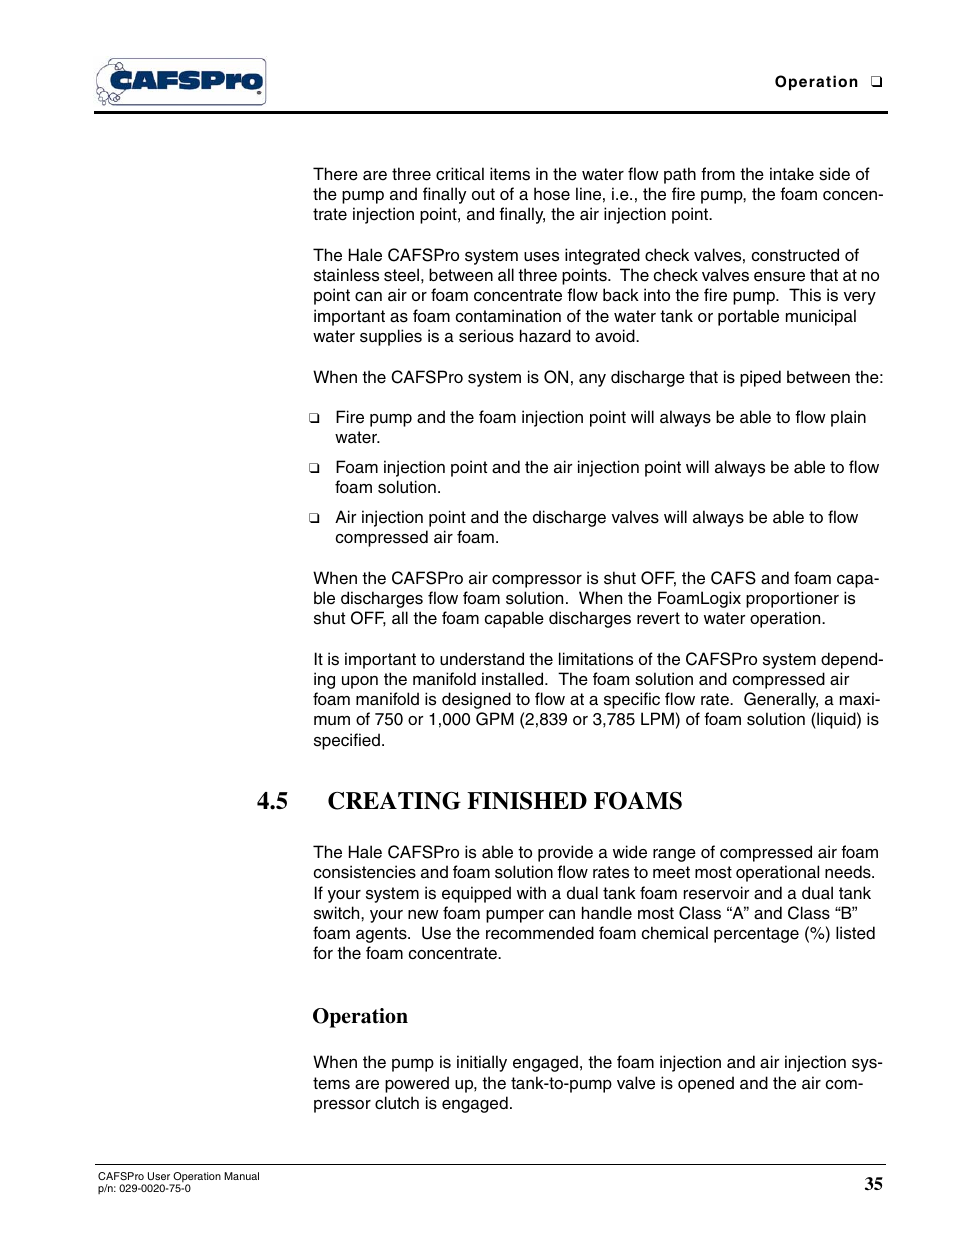 5 creating finished foams, Operation   Hale CAFSPro User Manual   Page 35 /  72